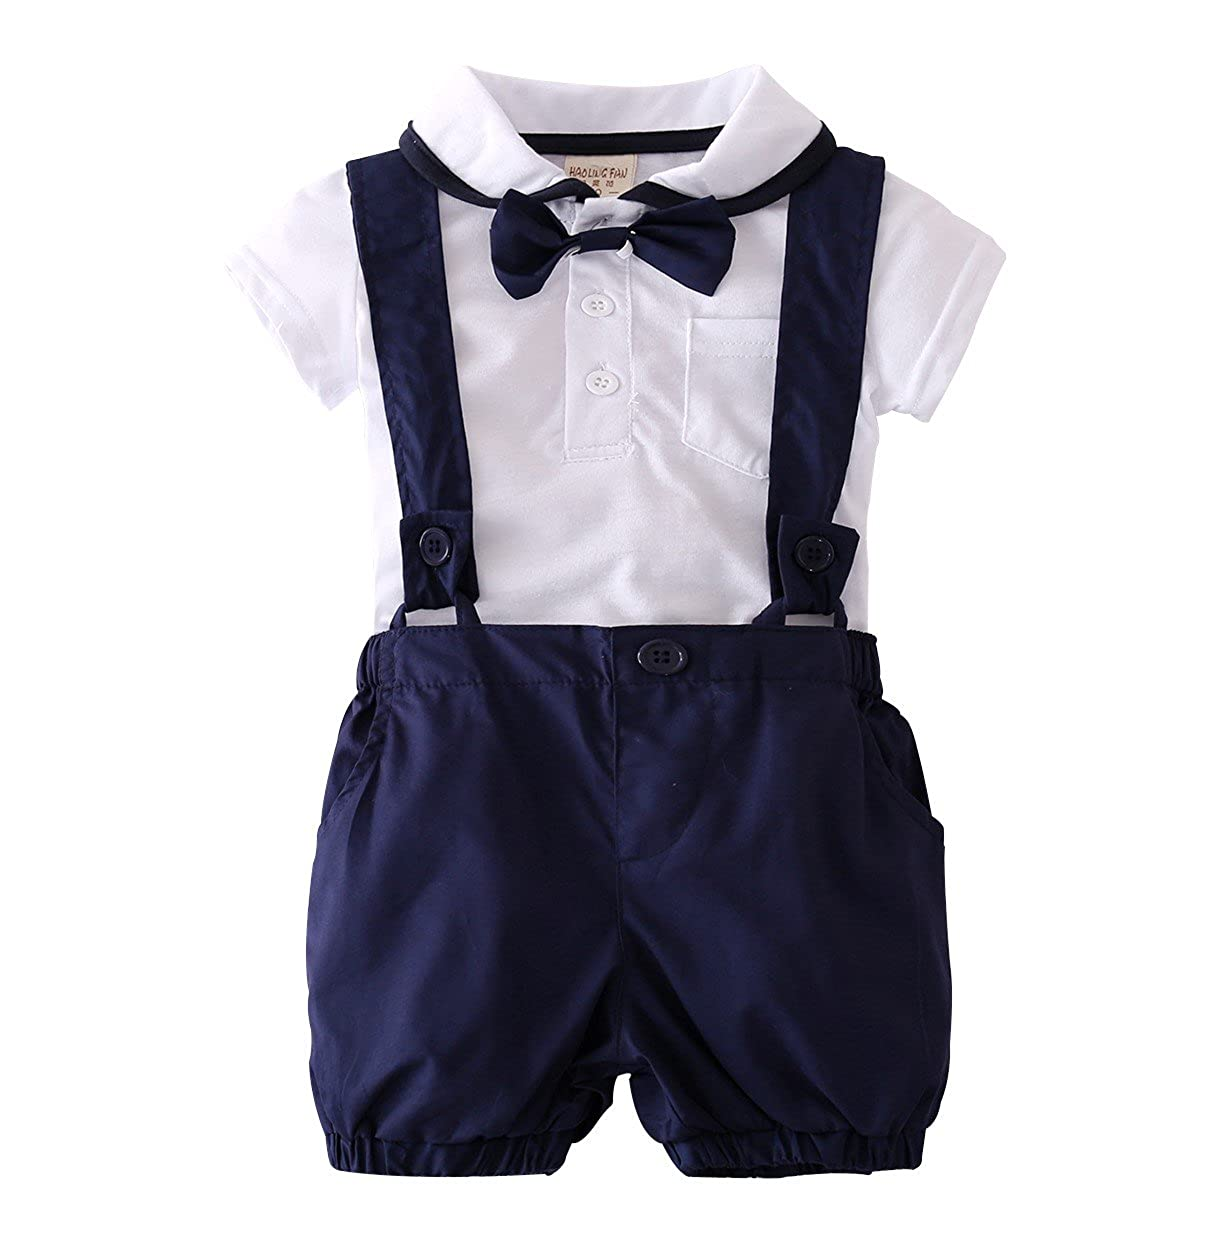 Eghunooy Baby Boys Short Sleeve Gentleman T-Shirt Overalls Clothes Set with Tie